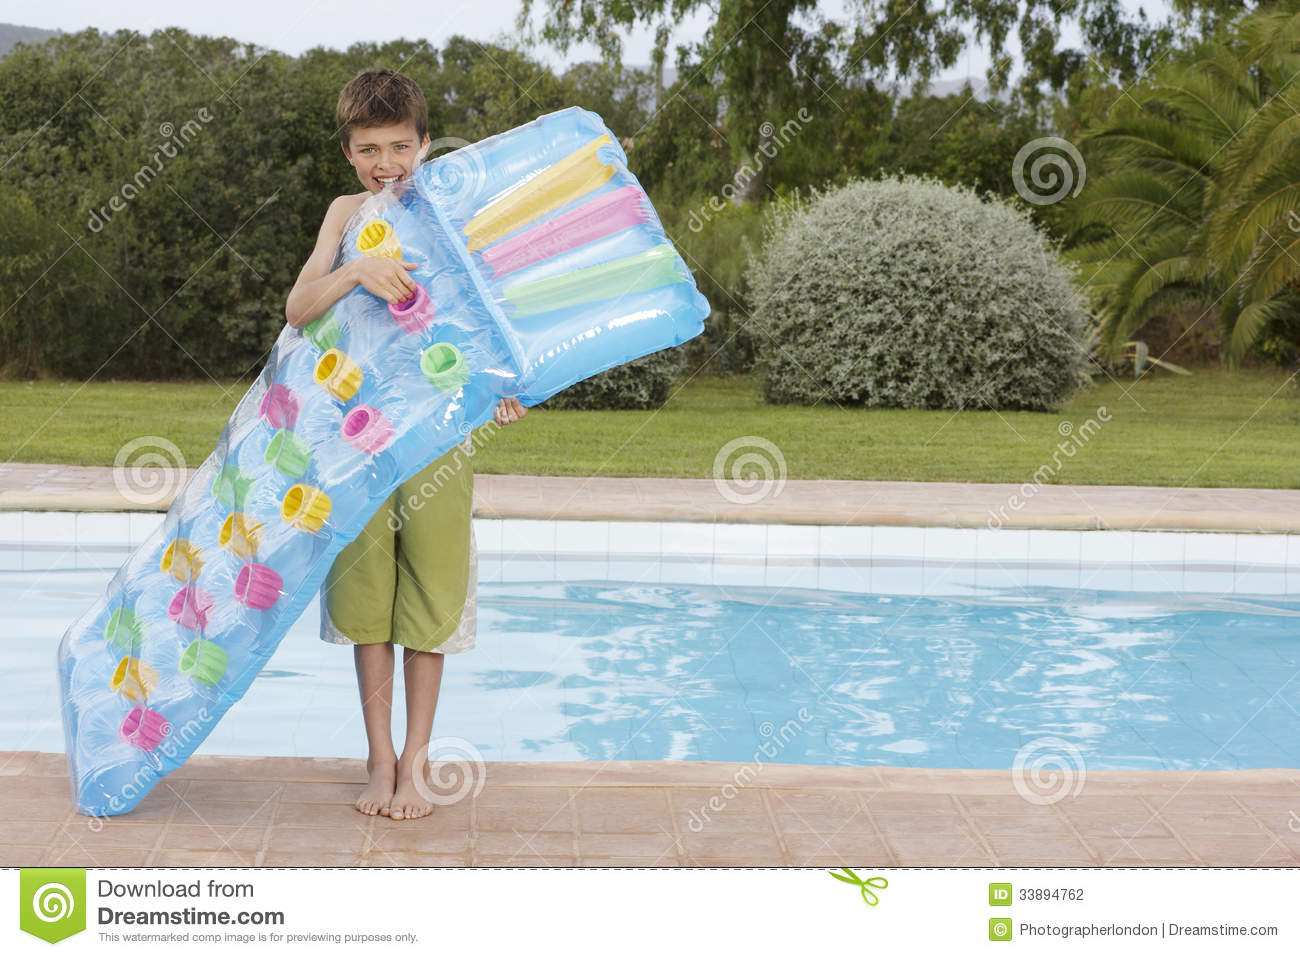 Boy Blowing Up Air Mattress Against Pool Stock Photo